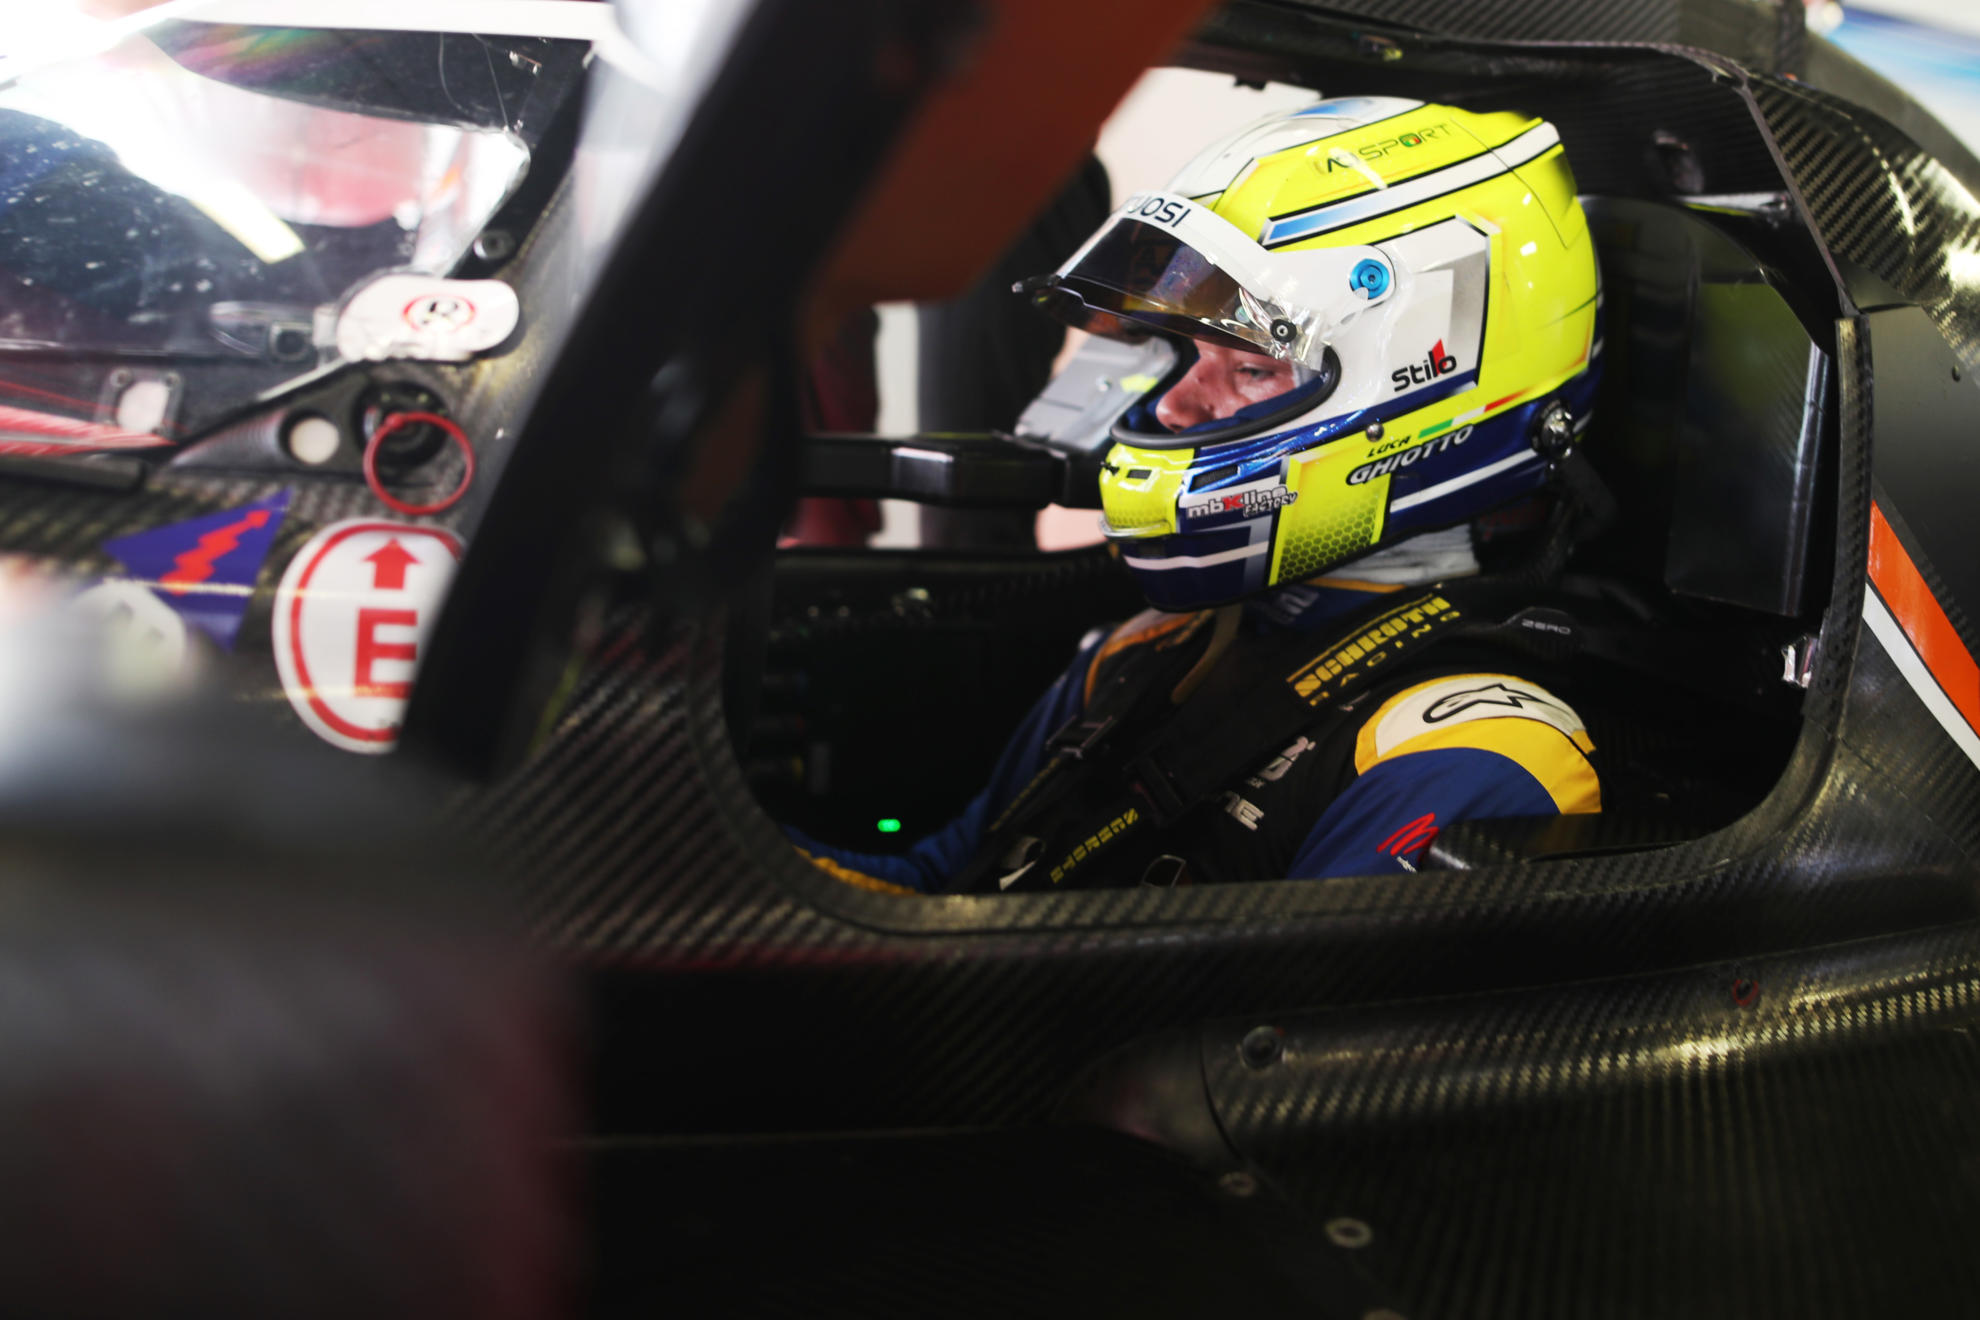 Luca Ghiotto Joins Team LNT Ginetta For 6 Hours of Fuji